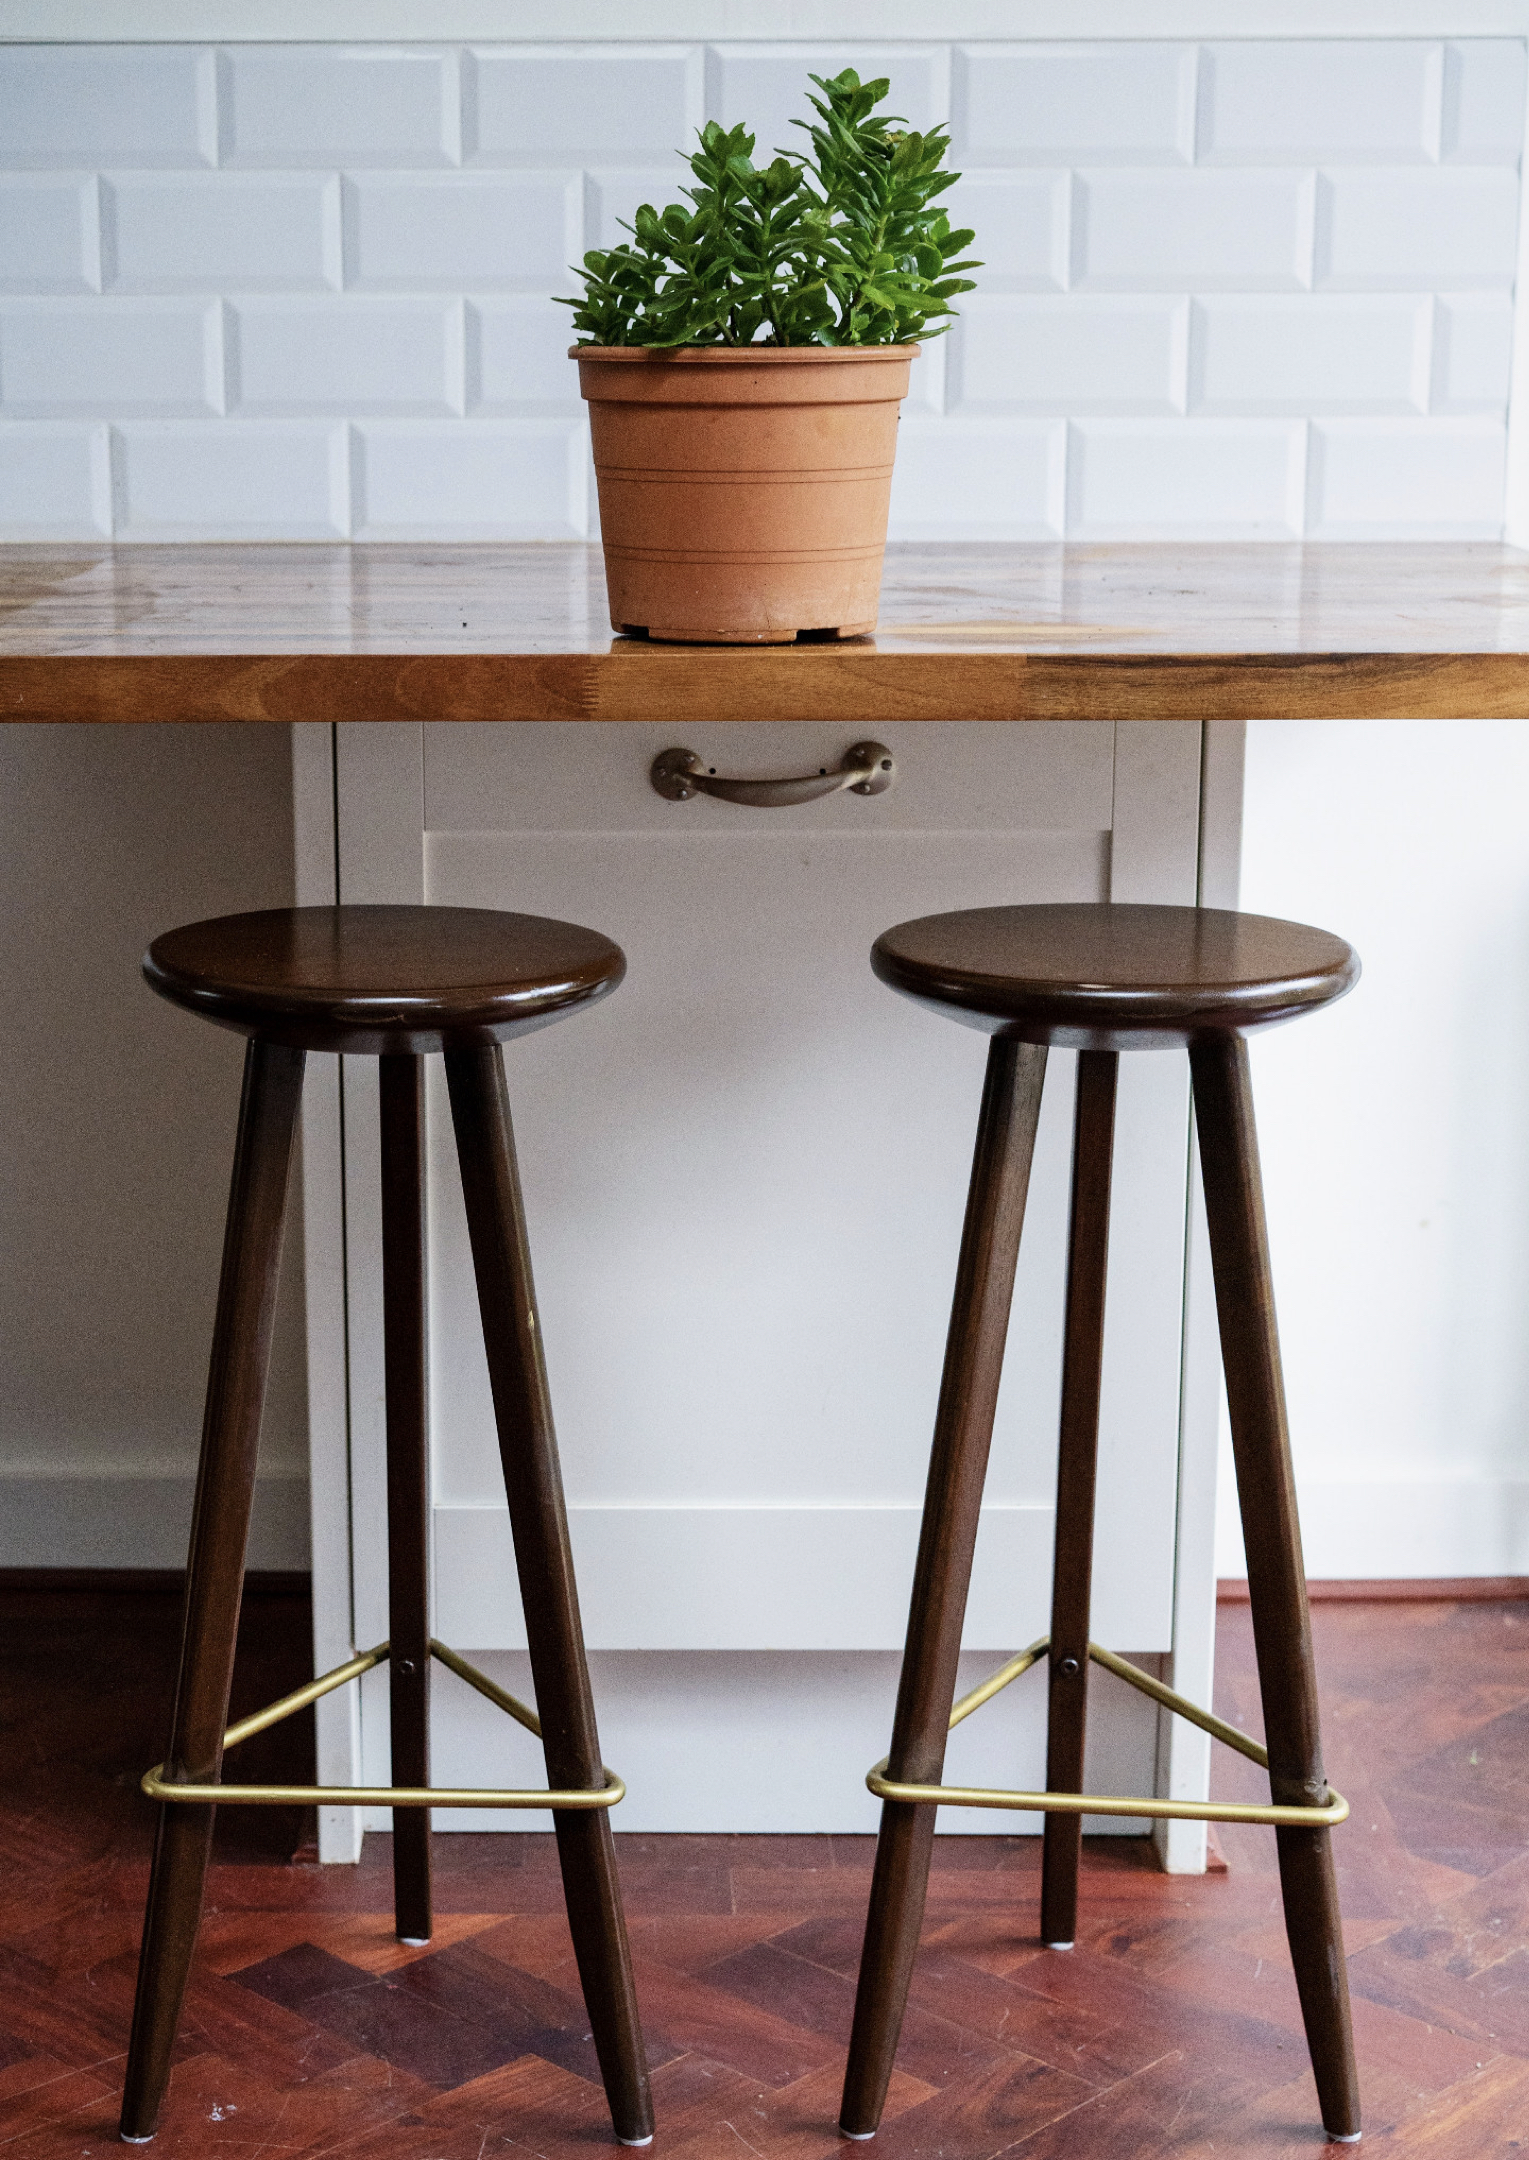 Two tall brown barstools with three legs and a brass frame under a natural wood countertop with a decorative green houseplant.